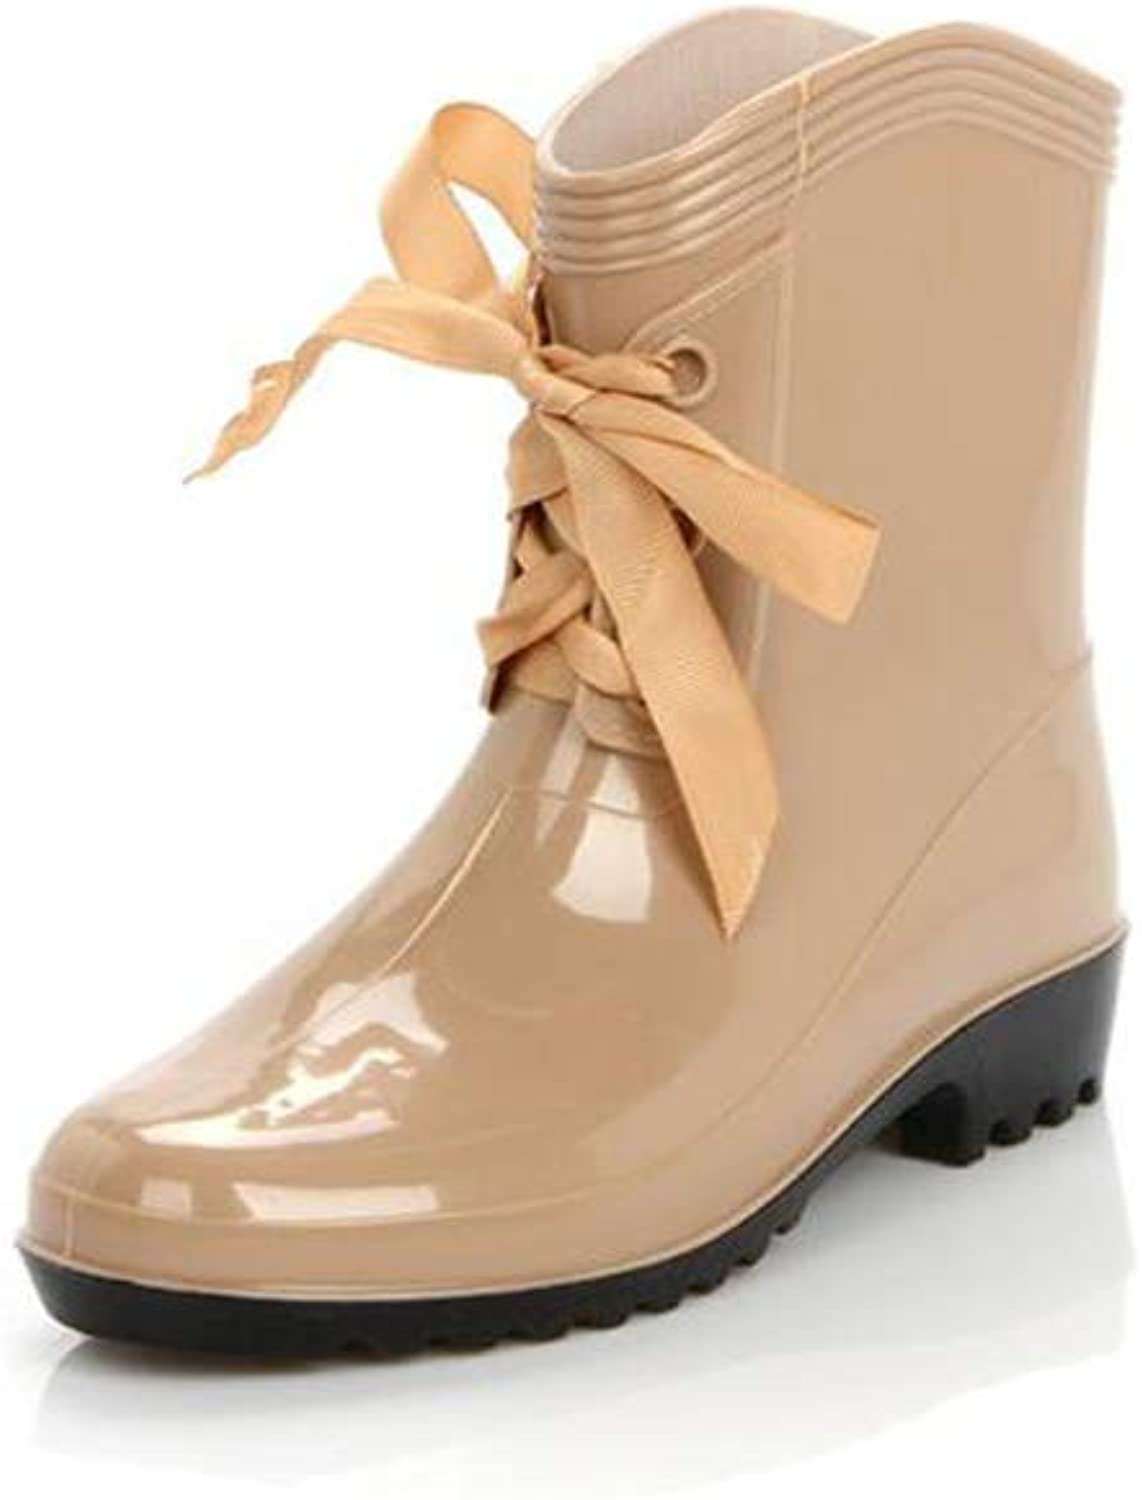 Fancyww Woman's Ribbon Bow Non-Slip Fully Enclosed Rain Boots